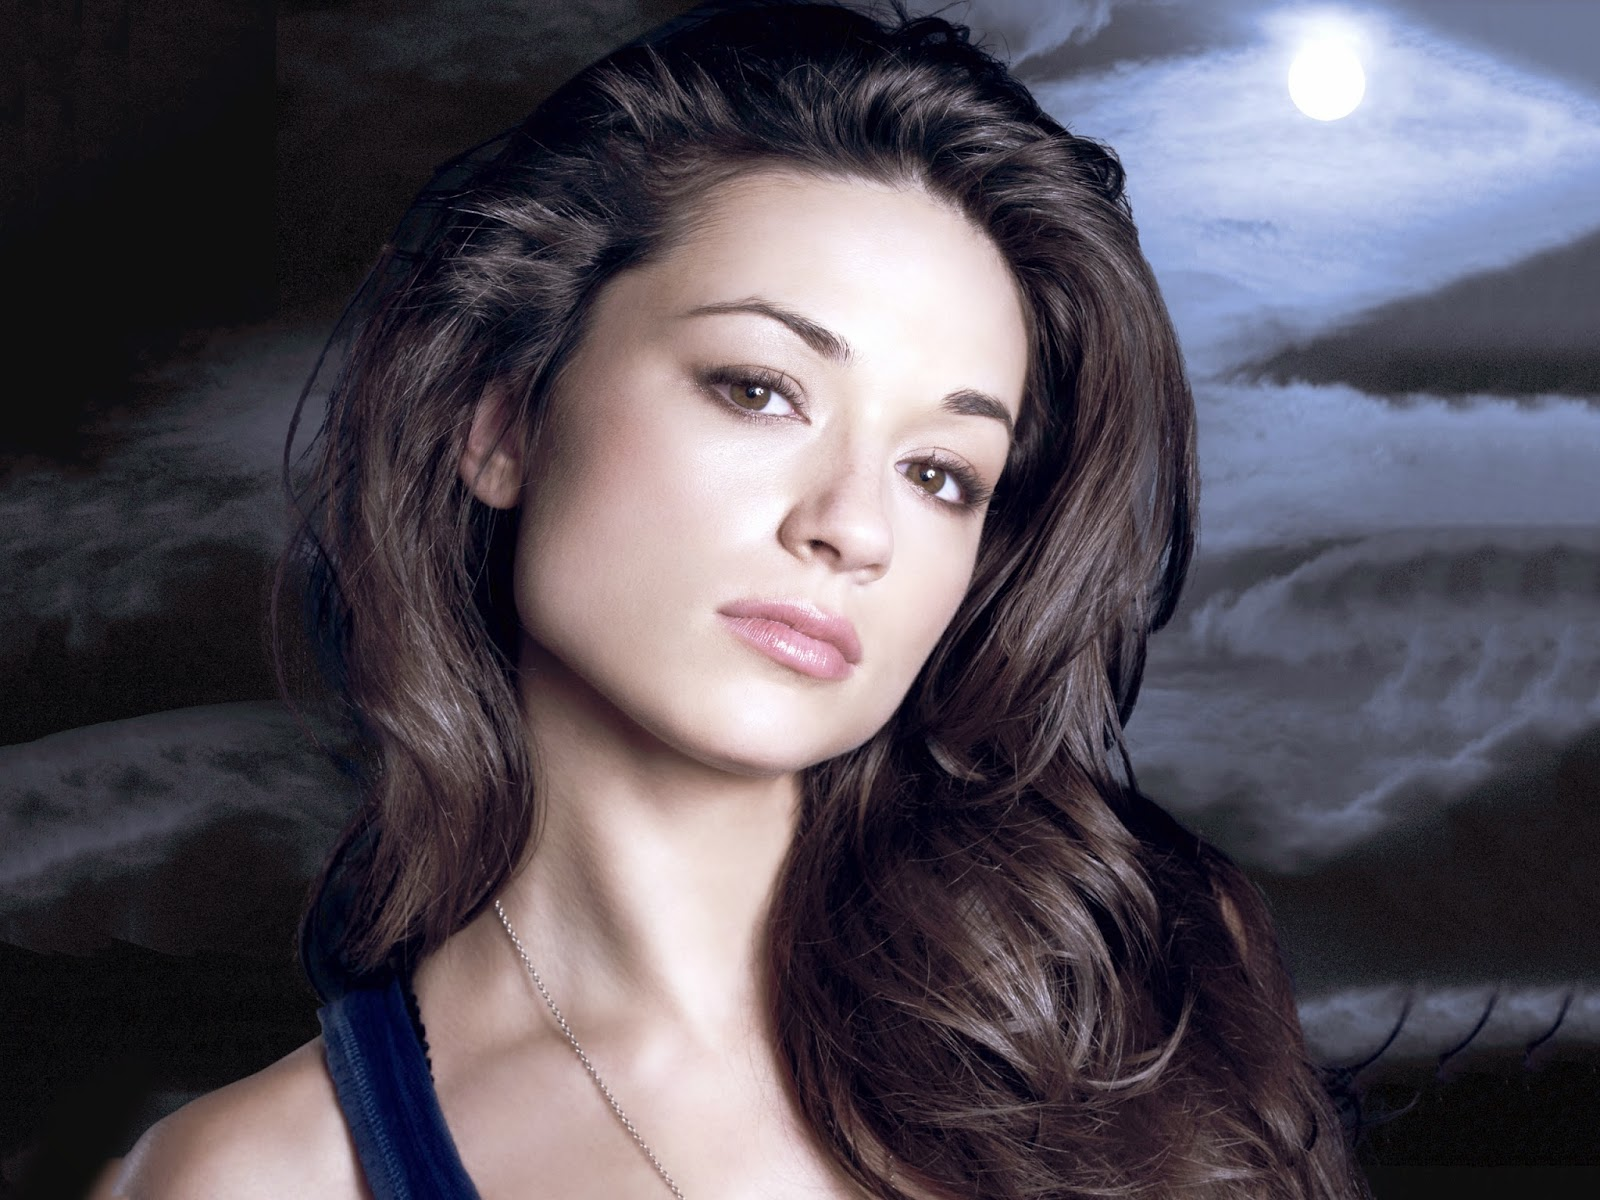 Forum on this topic: Ava Gaudet, crystal-reed/